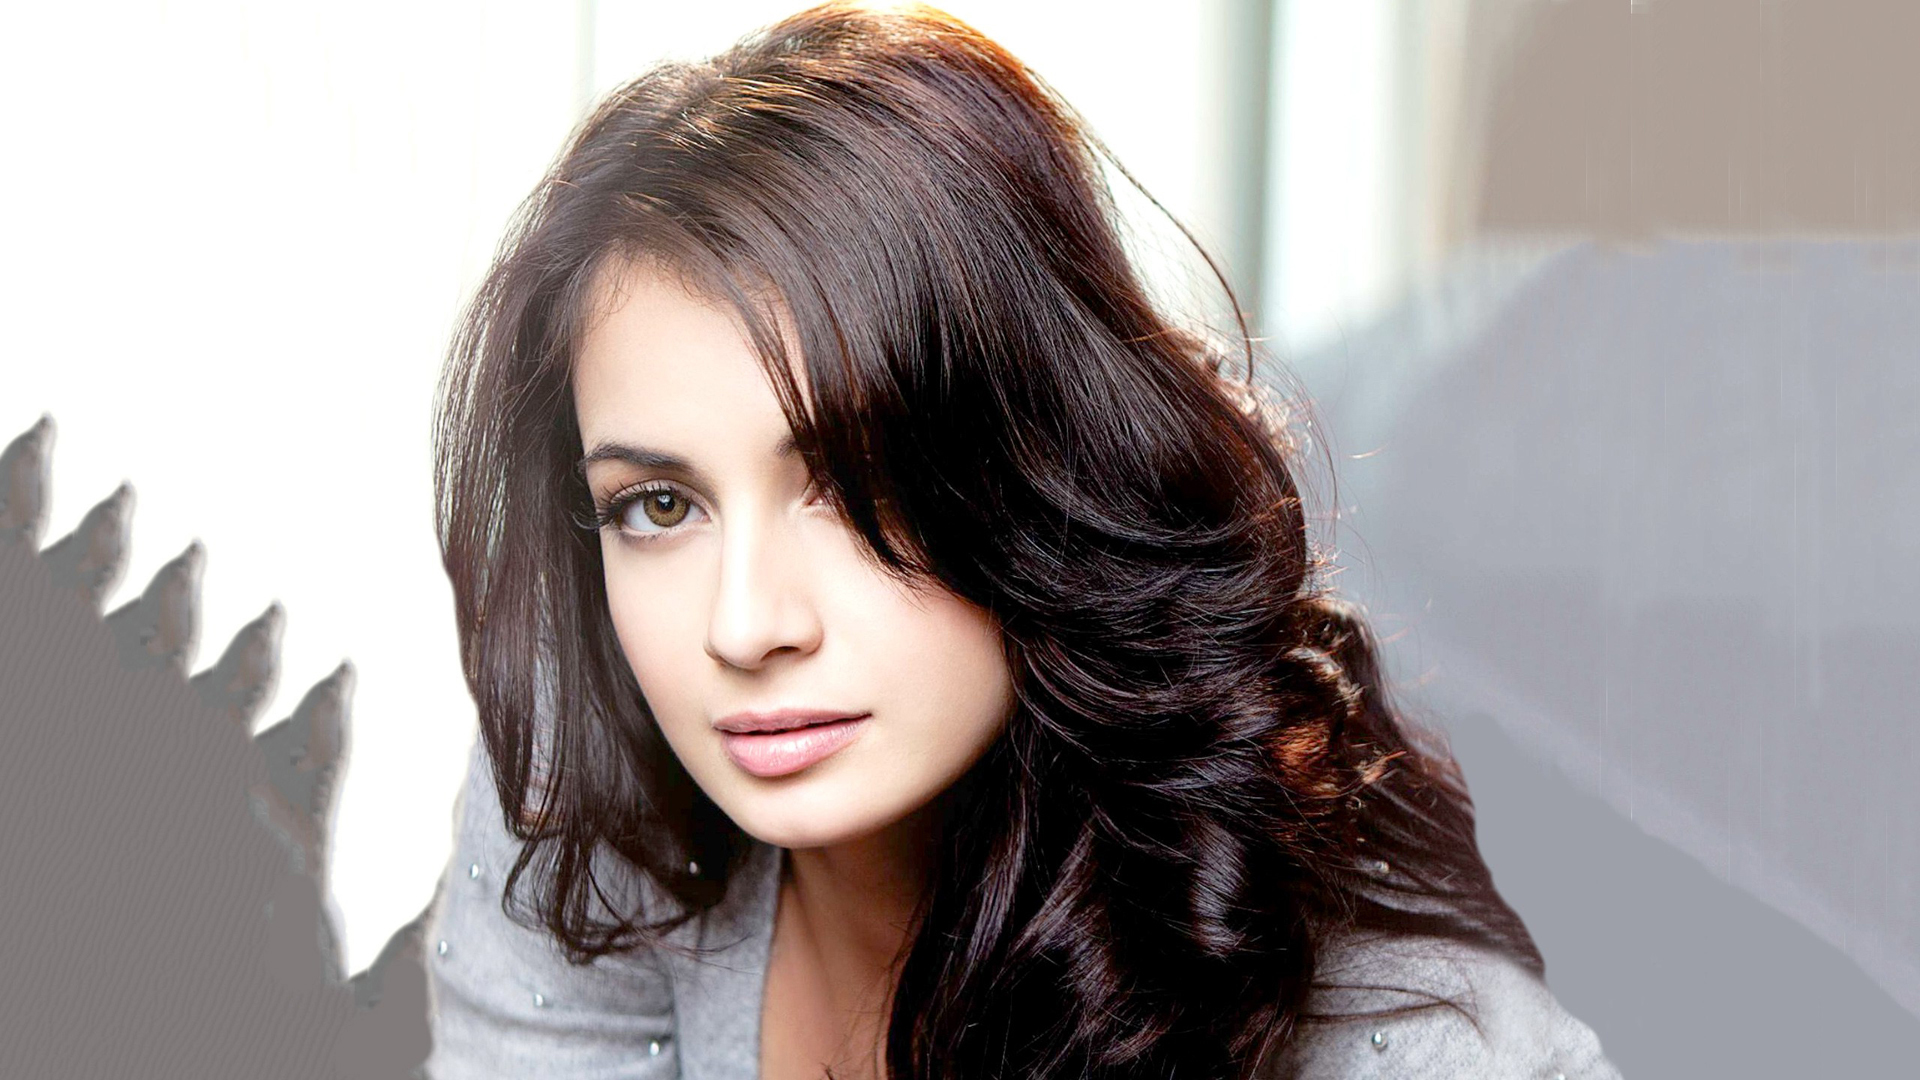 Amazing Dia Mirza Eye Look Mobile Hd Download Free Background Wallpaper